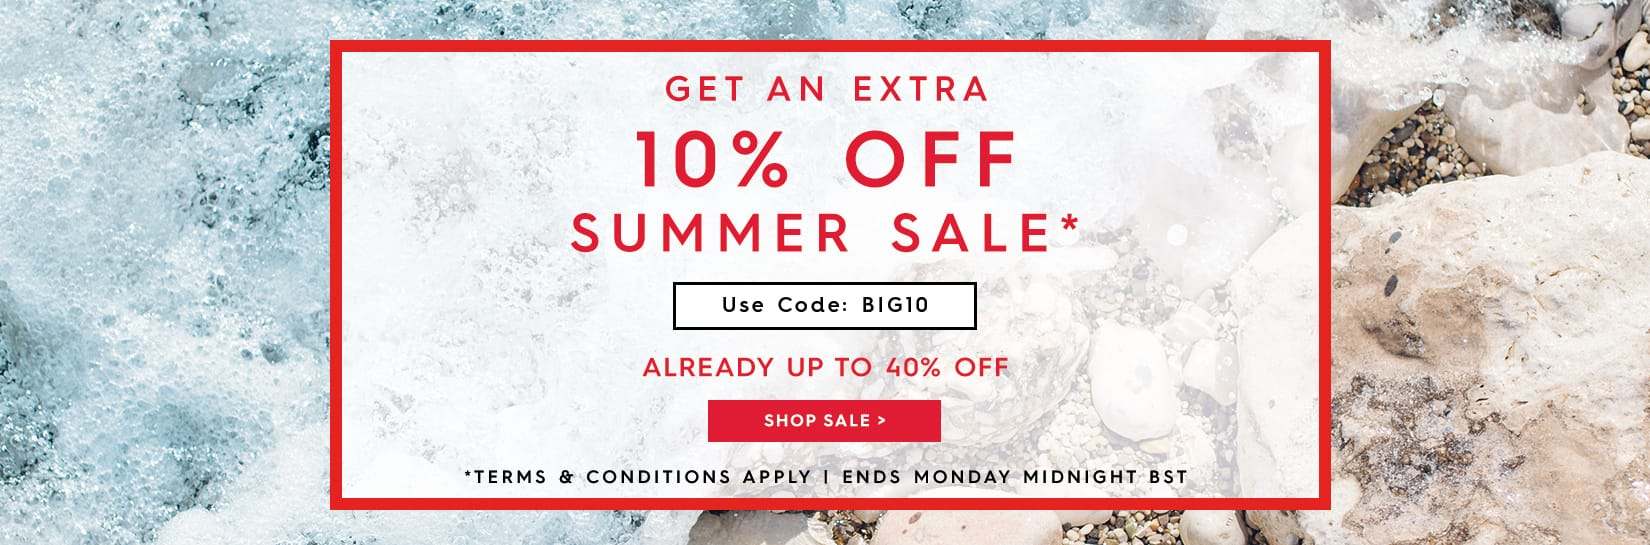 Woolovers Woolovers: extra 10% off Summer Sale products up to 40% off